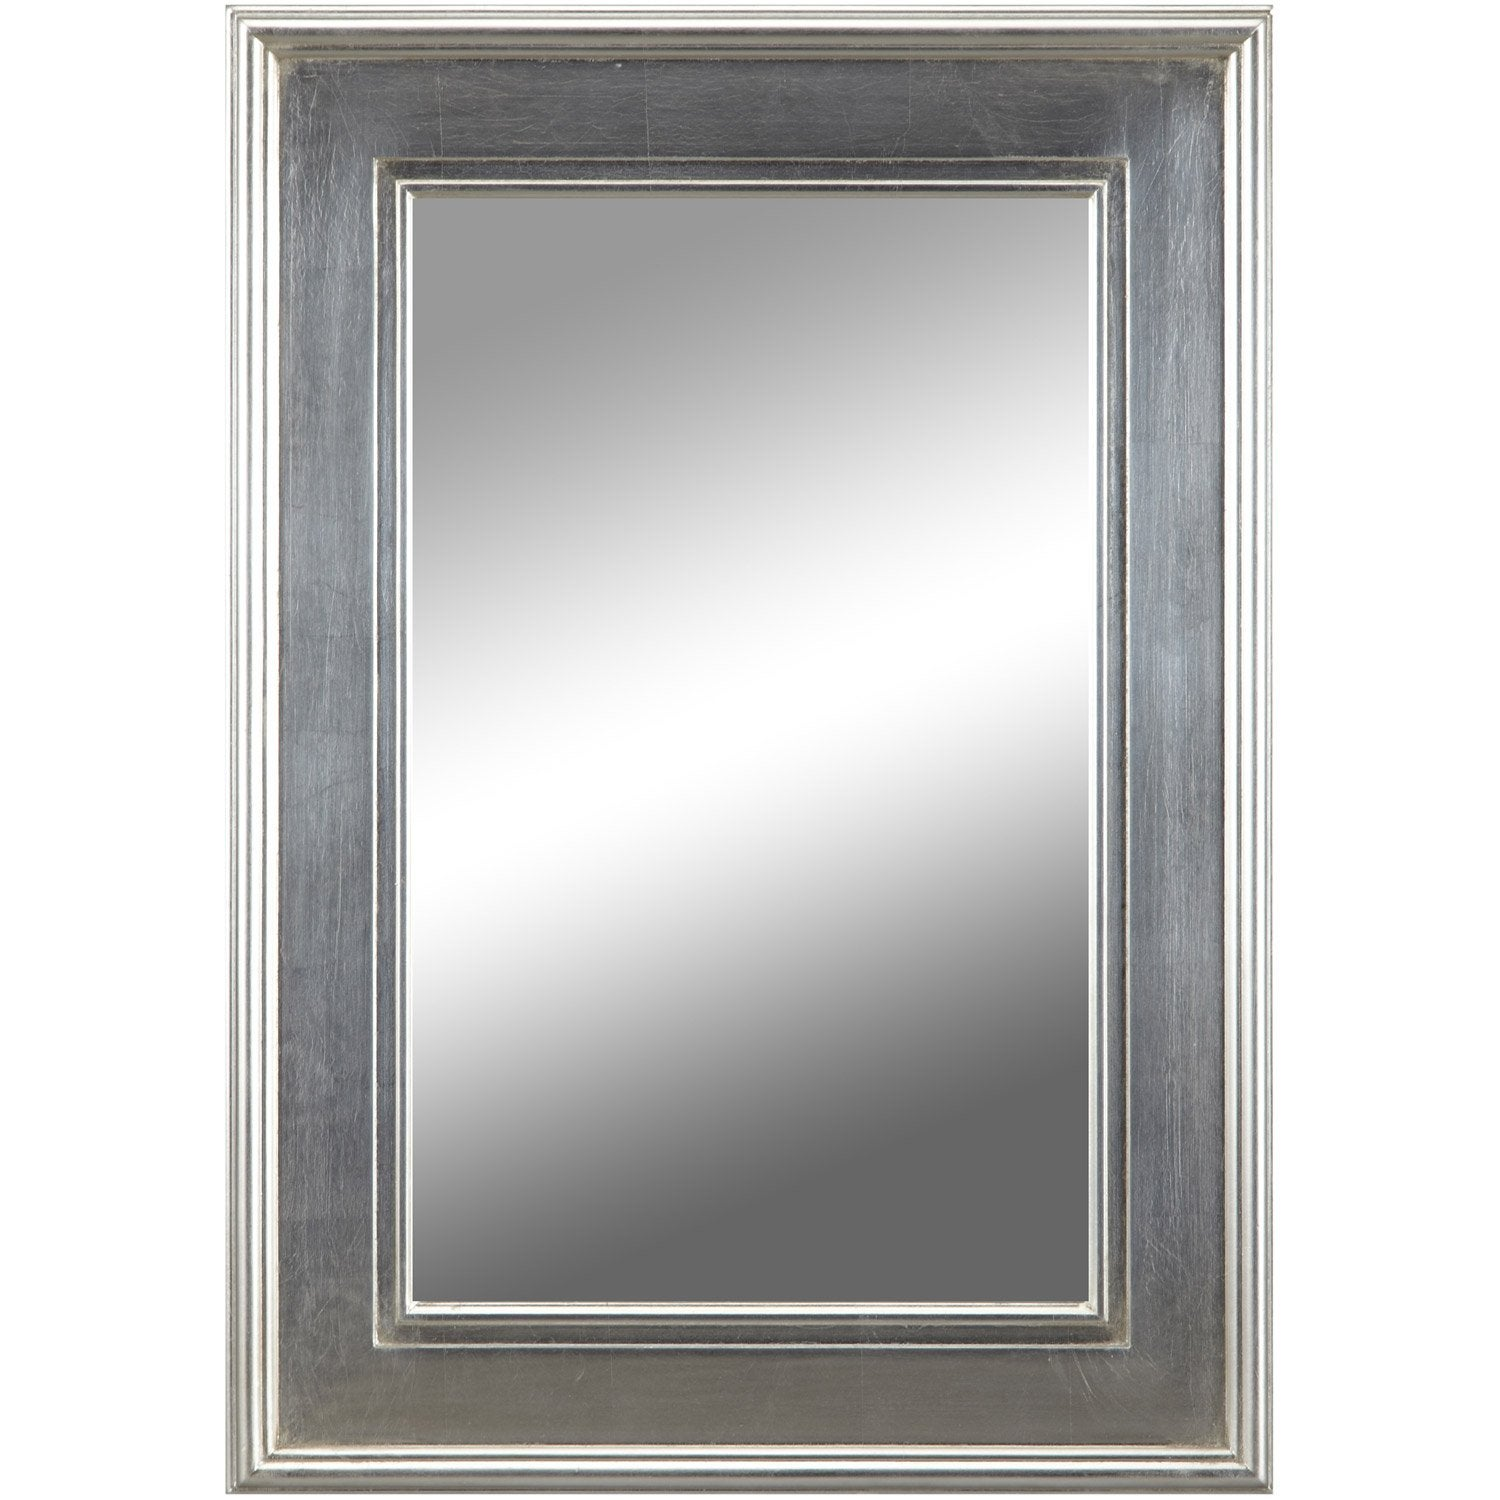 miroir tisbury rectangle argent x cm leroy merlin miroir